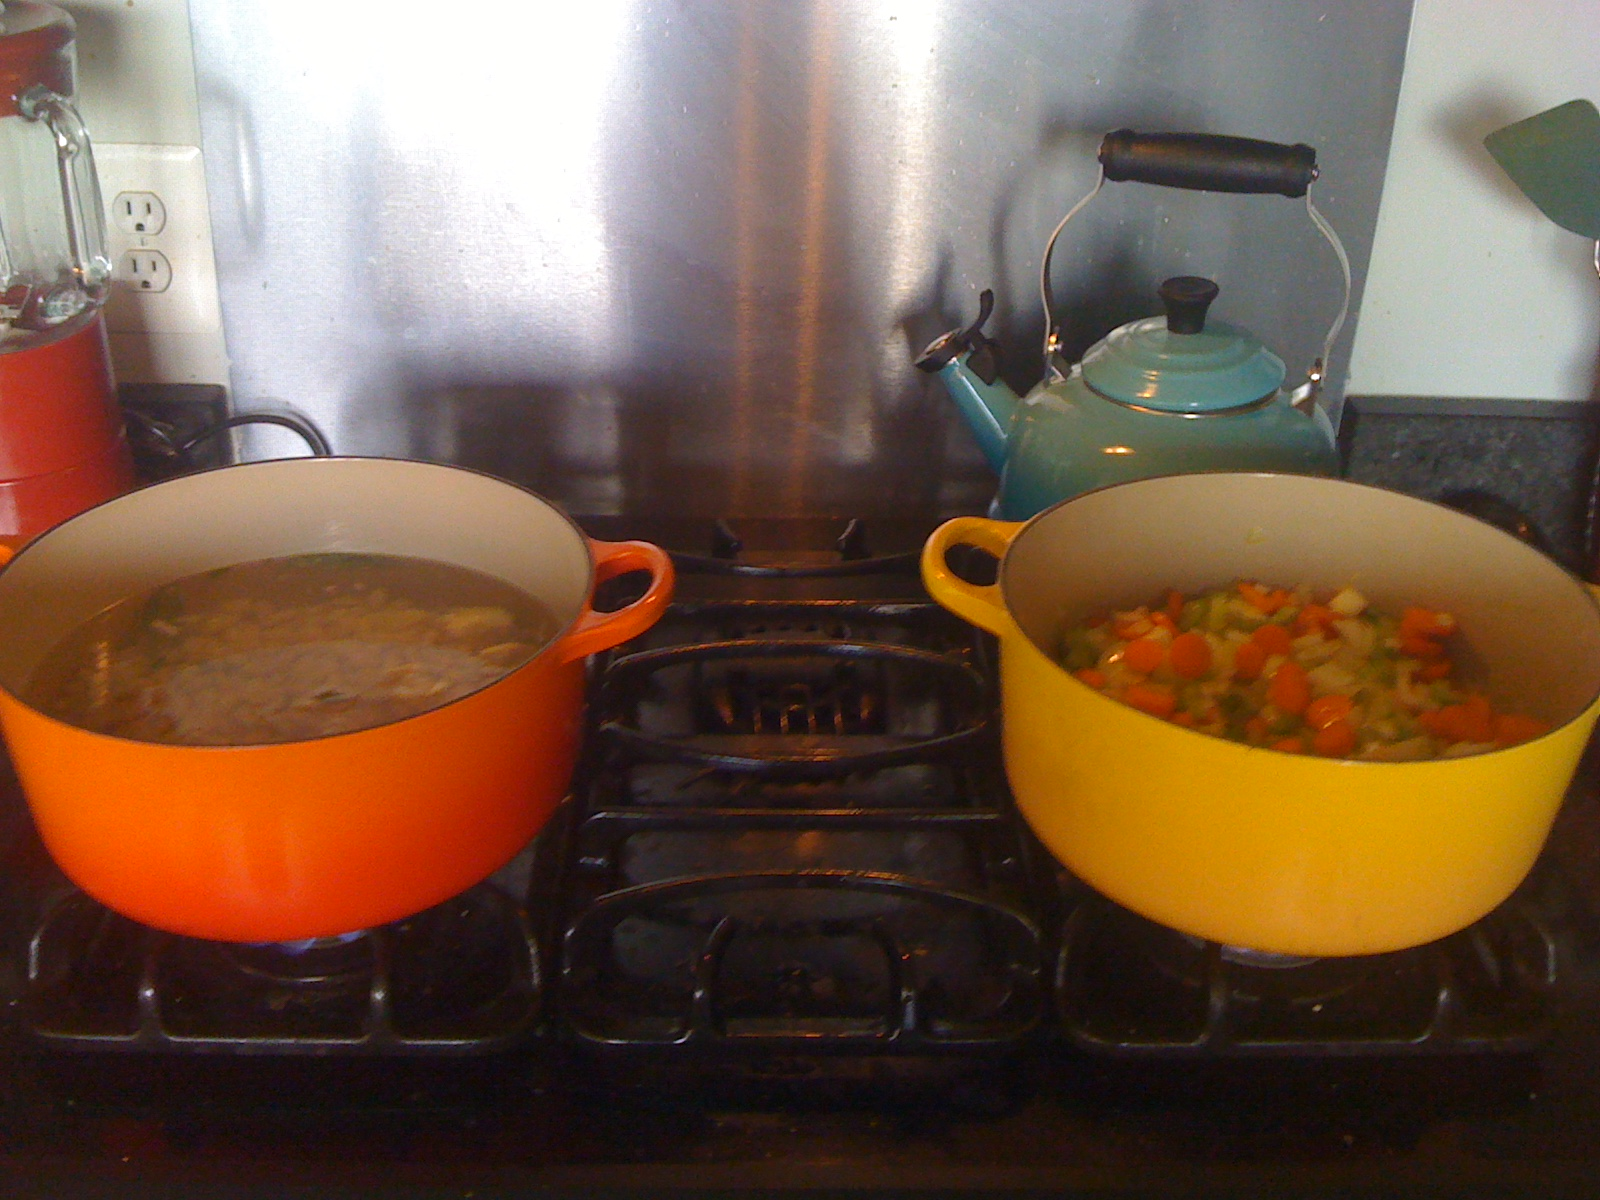 Chicken posole on the left, lentil on the right. Healthy, easy, affordable lunch and dinner for more than a week!